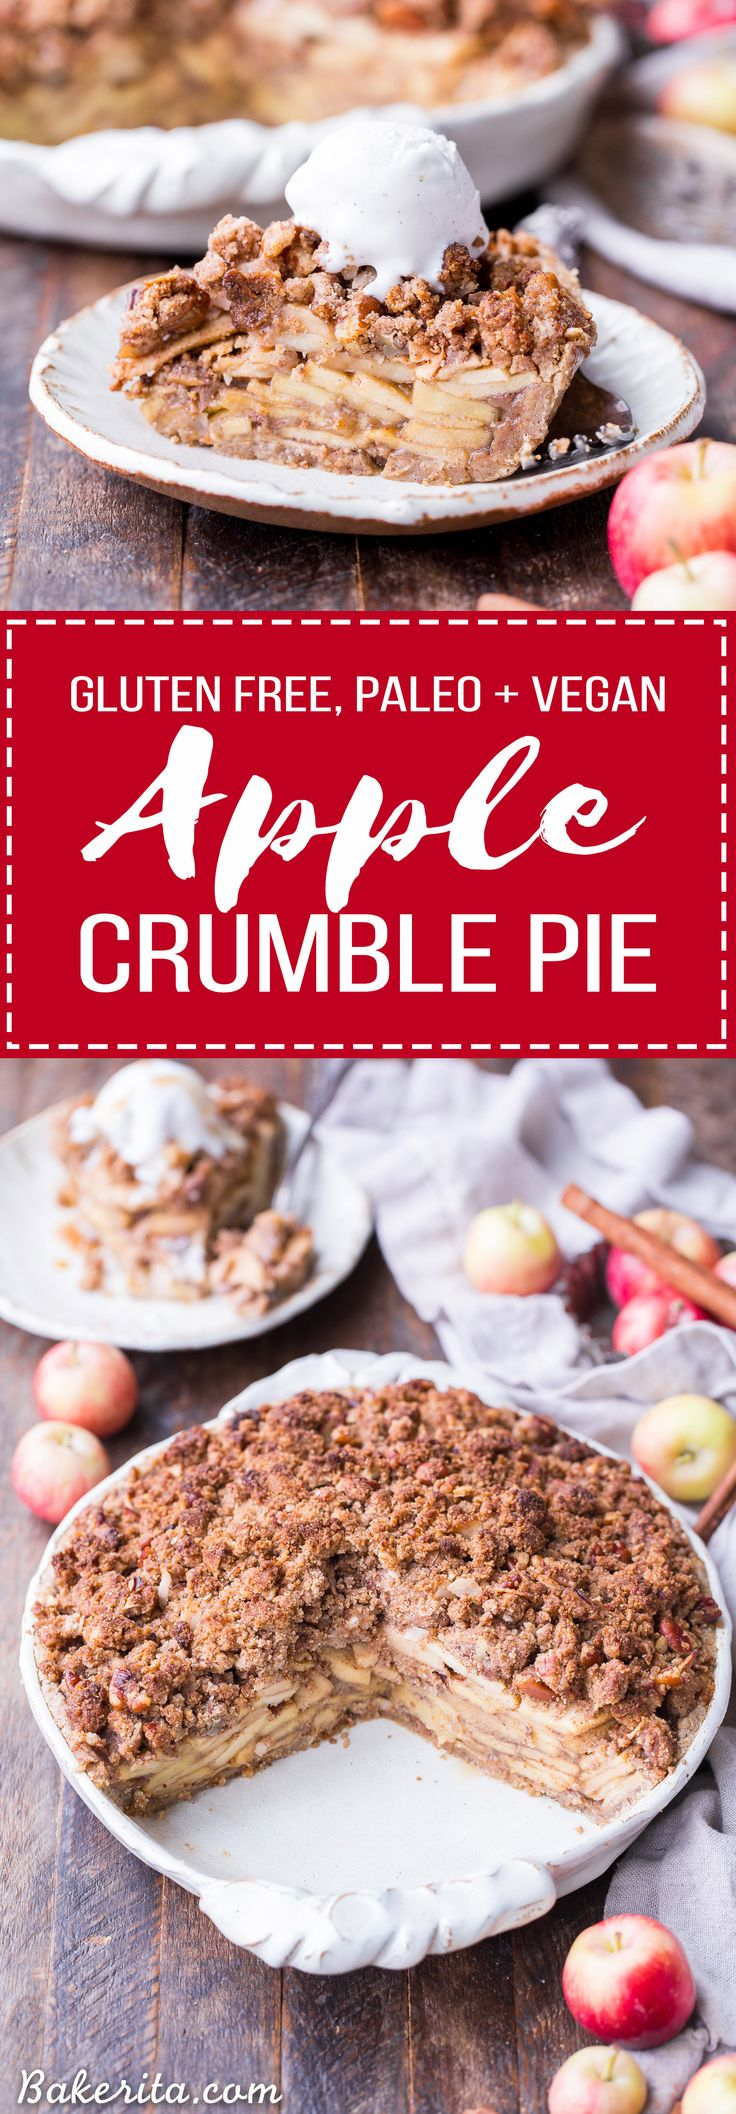 This Apple Crumble Pie is so delicious it's bound to be a holiday dessert staple! This gluten free, paleo + vegan pie is filled with soft, caramelized apples and topped with a nutty, crunchy paleo crumble topping. #ad @bobsredmill